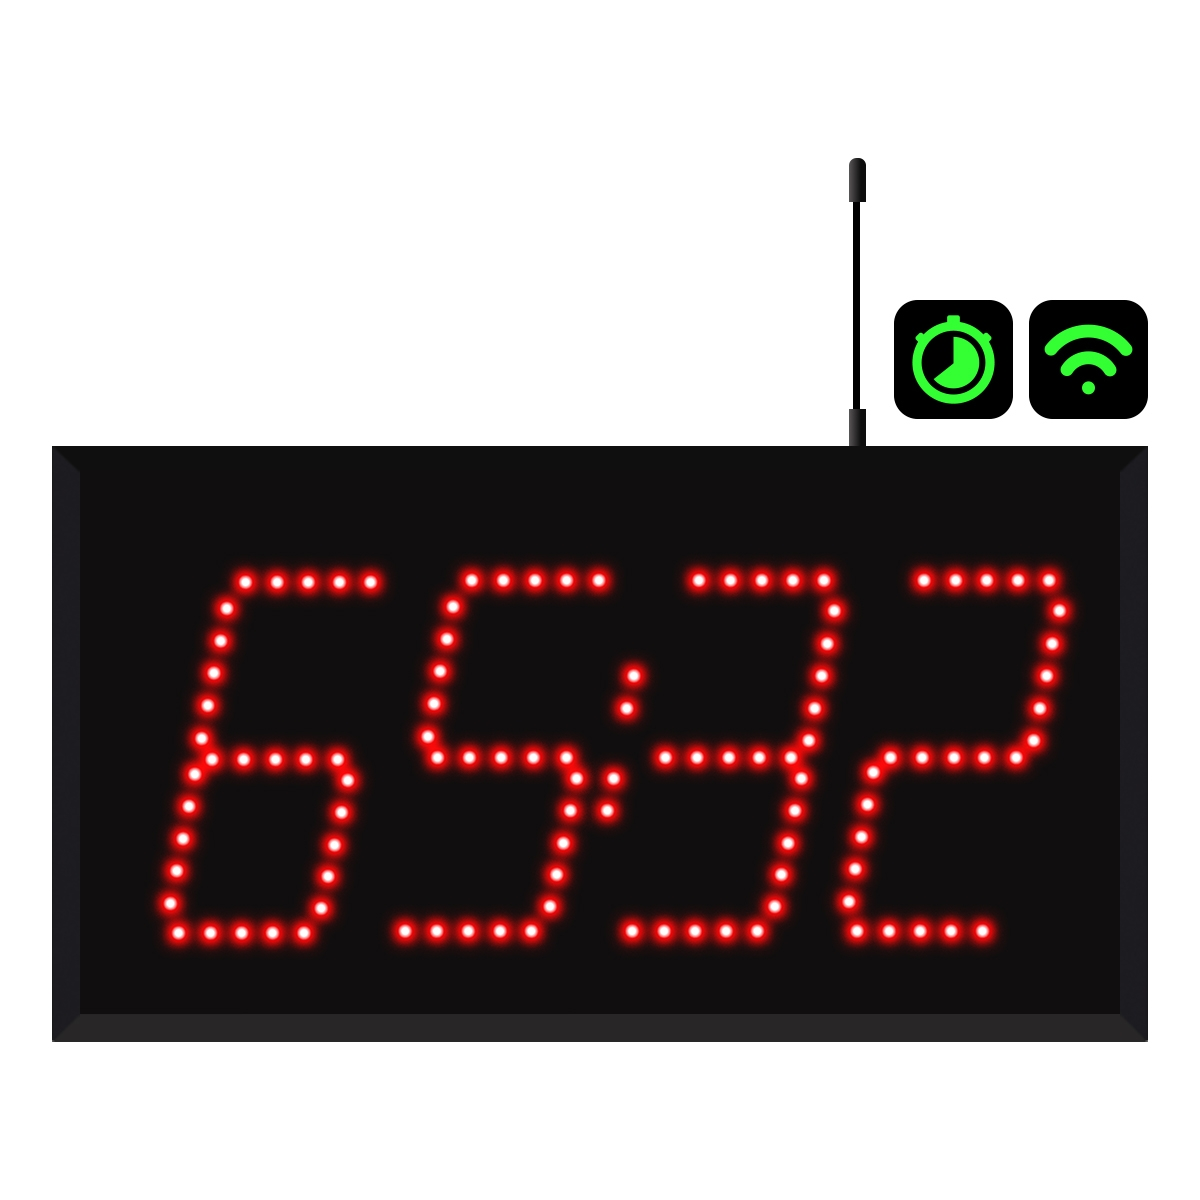 4-Digit Wi-Fi Countdown Timer Display